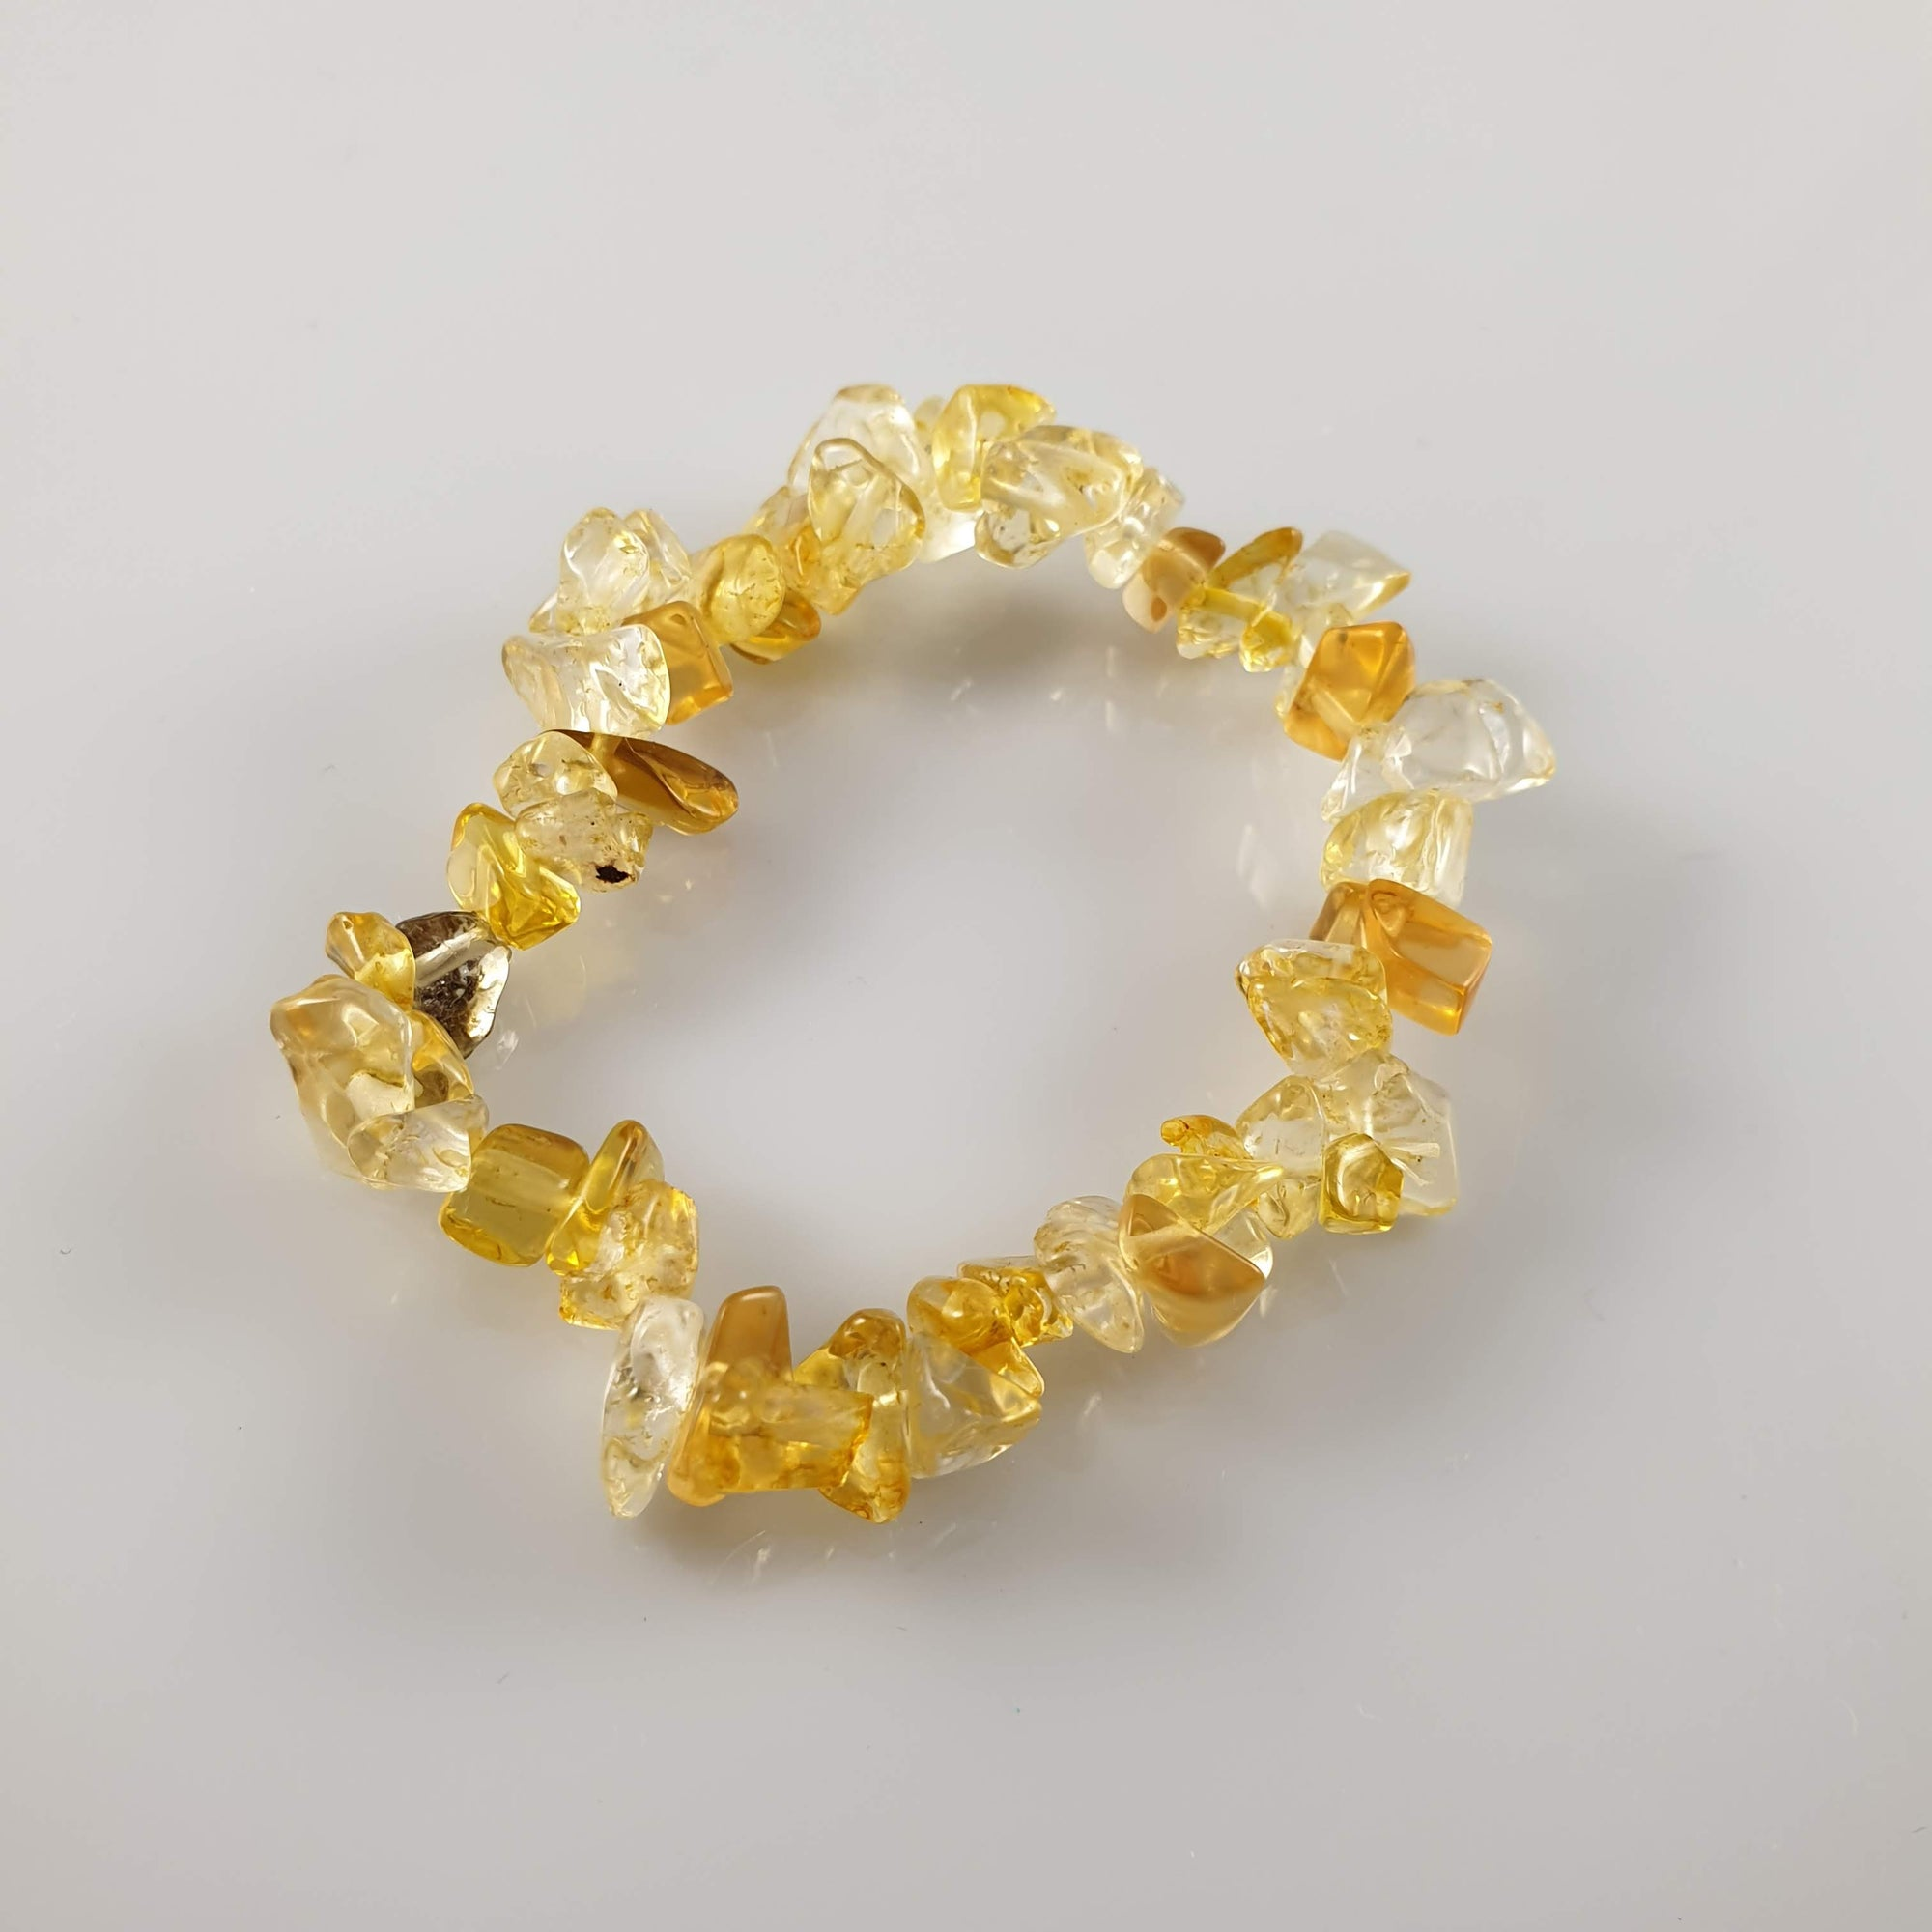 Citrine Chip Crystal Bracelet - Rivendell Shop NZ